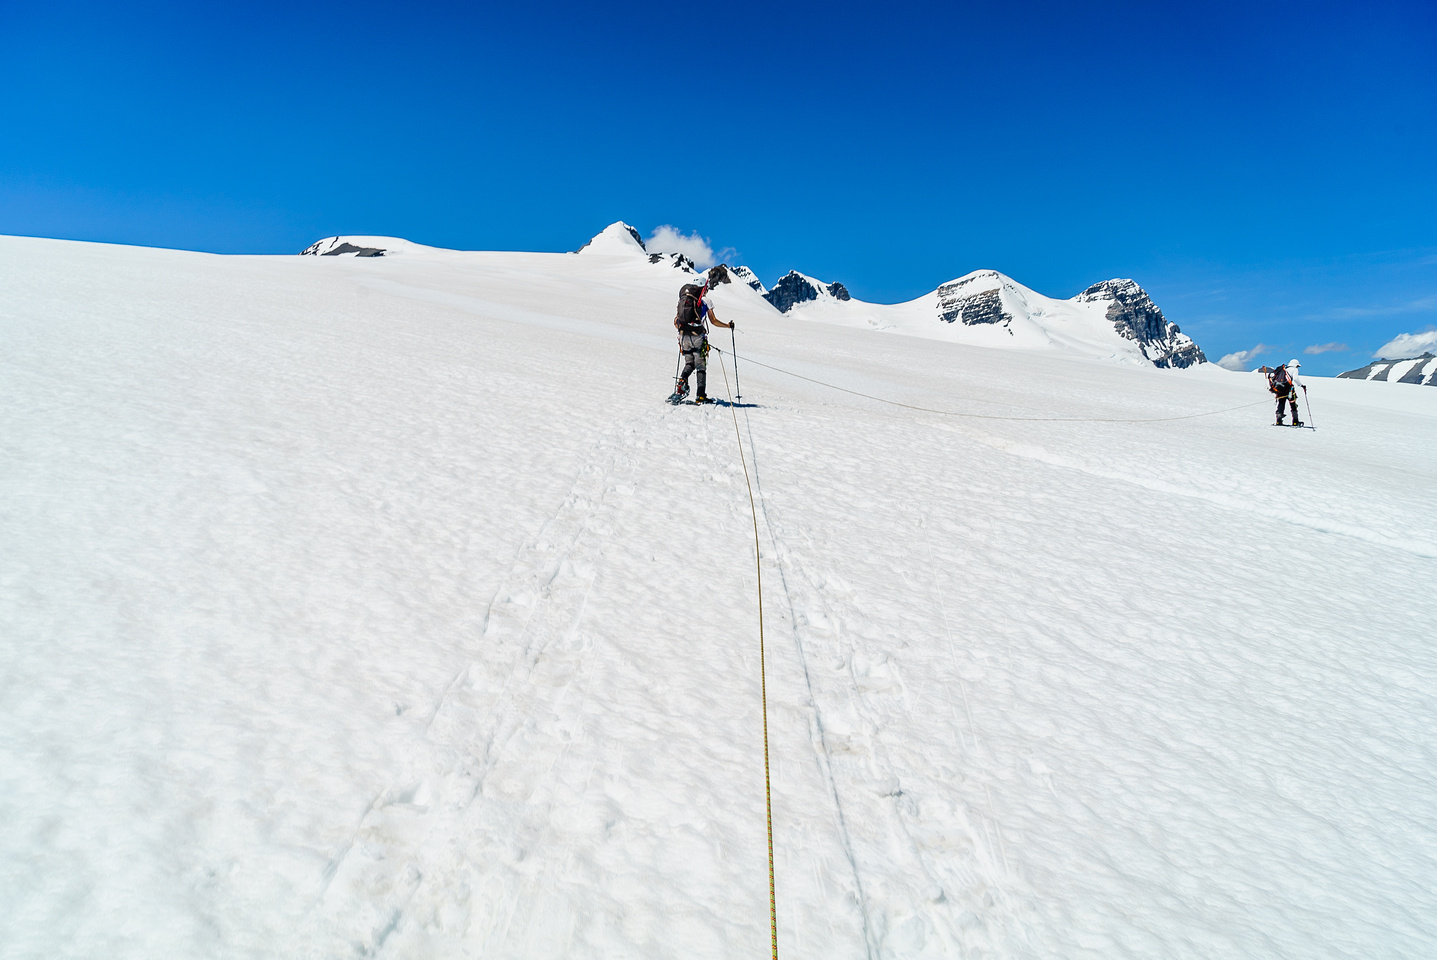 Avoiding a crevasse on the  lower south ridge of Christian Peak which rises in the far distance over Ben's head at center.